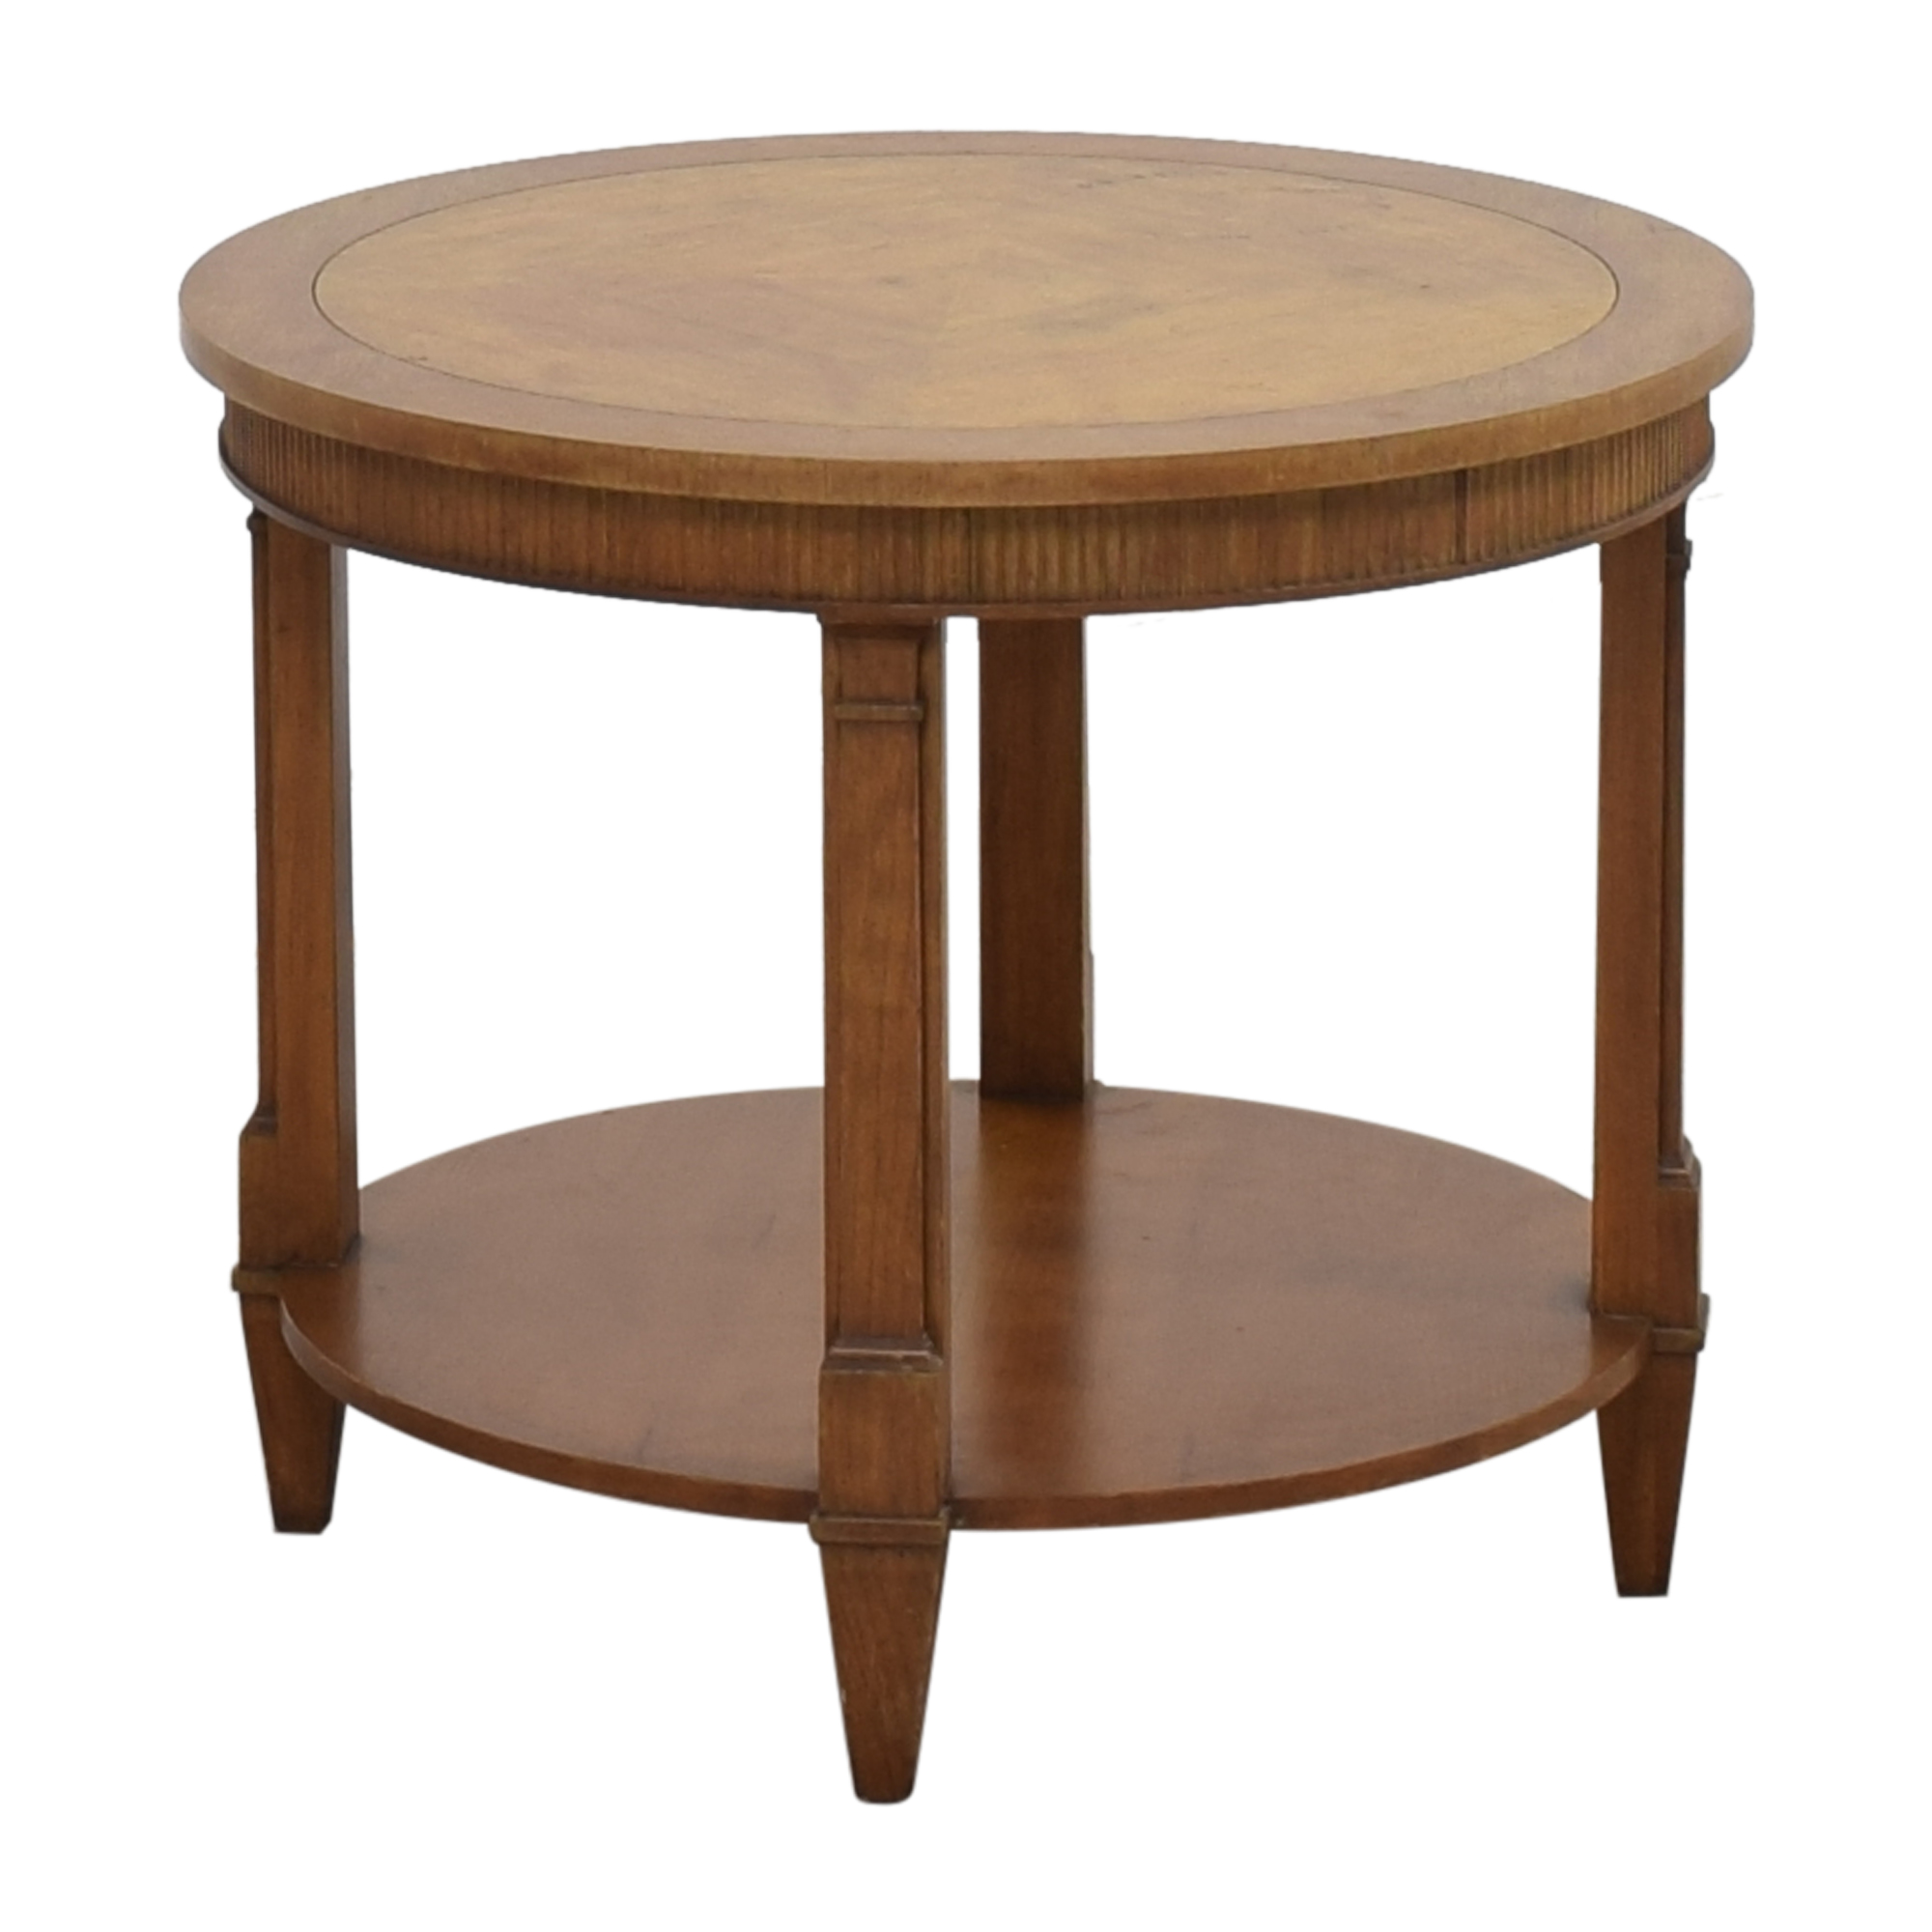 Baker Furniture Baker Furniture Round Accent Table